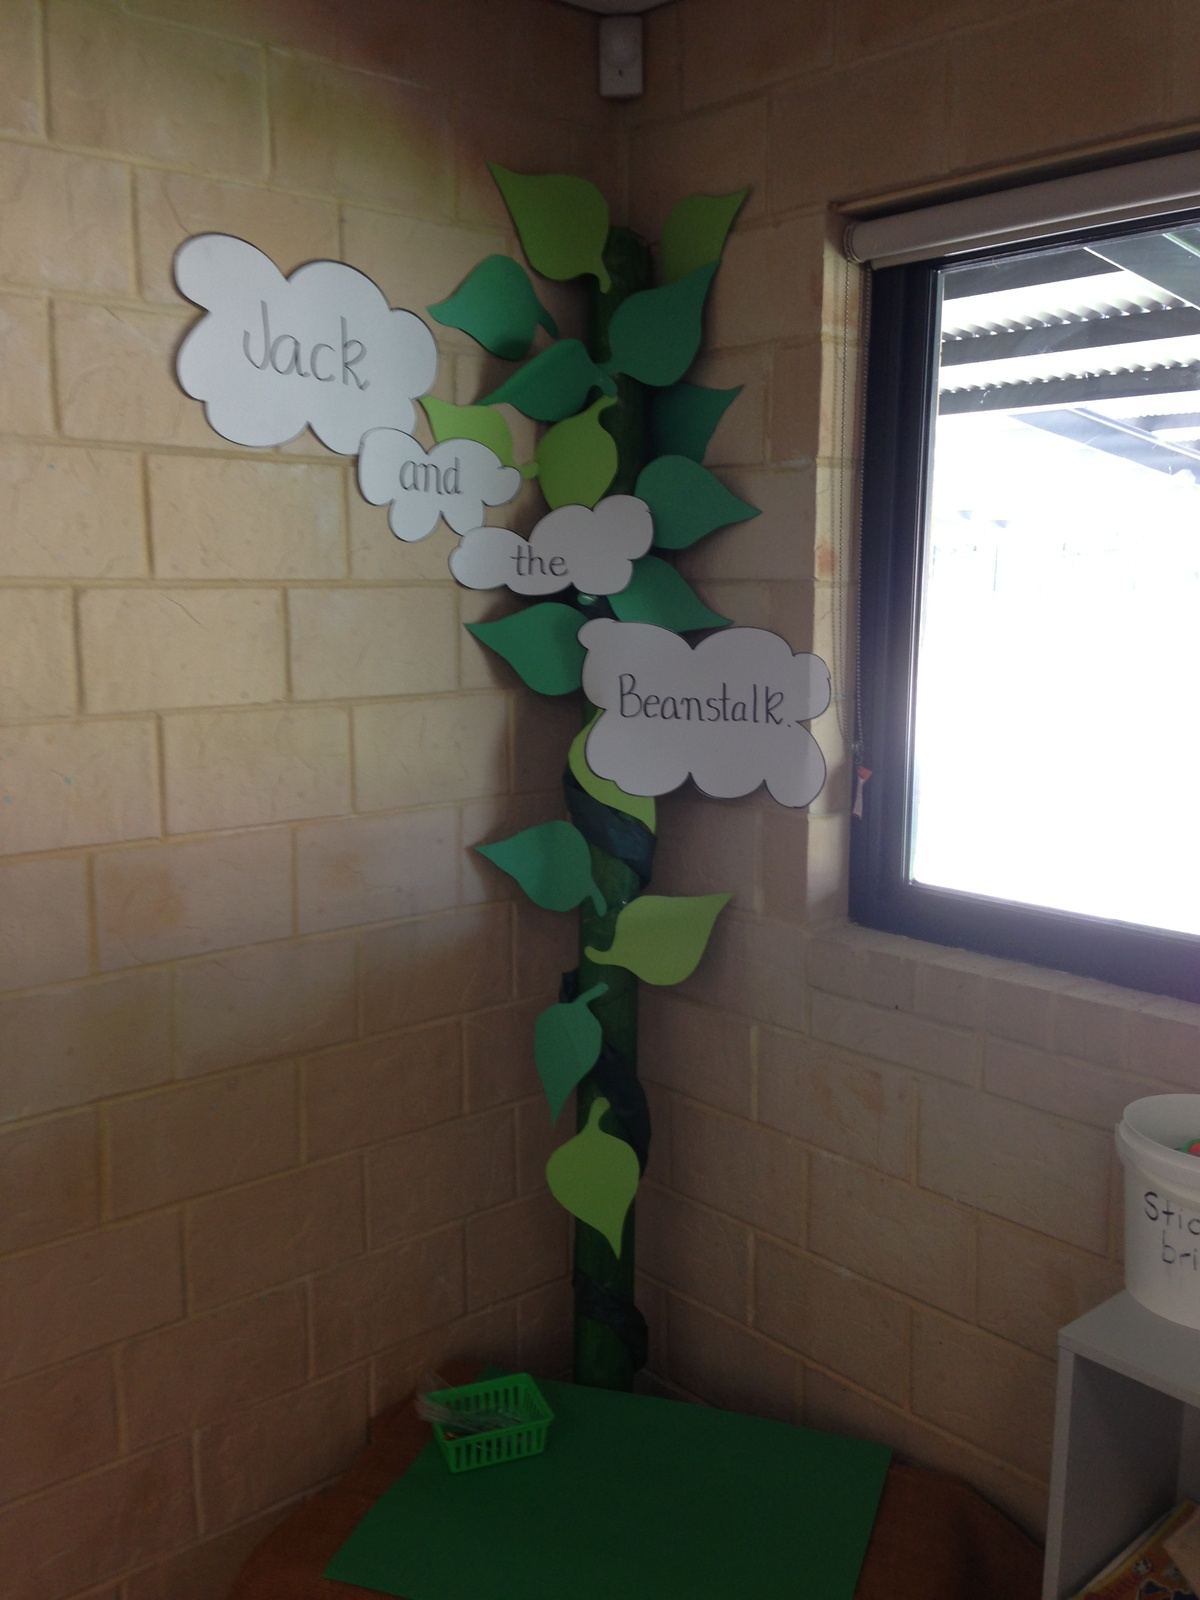 Images About Jack And The Beanstalk